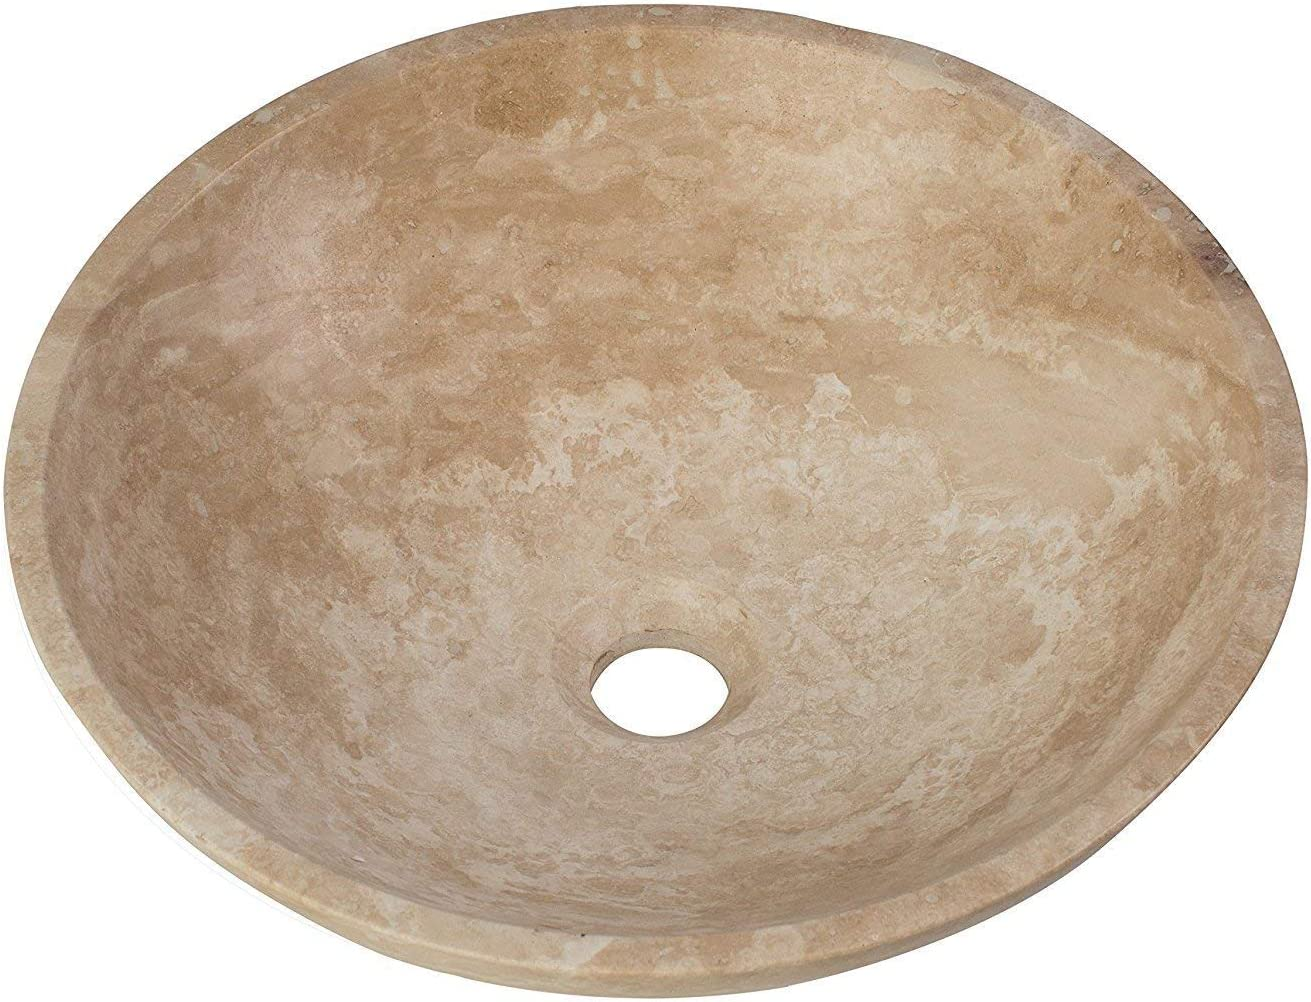 MAYKKE Helena 16 Round Stone Vessel Sink Modern Beige and White Natural Stone Travertine Sinks for Bathroom Vanity Cabinet White Jade Travertine, ASA1007101